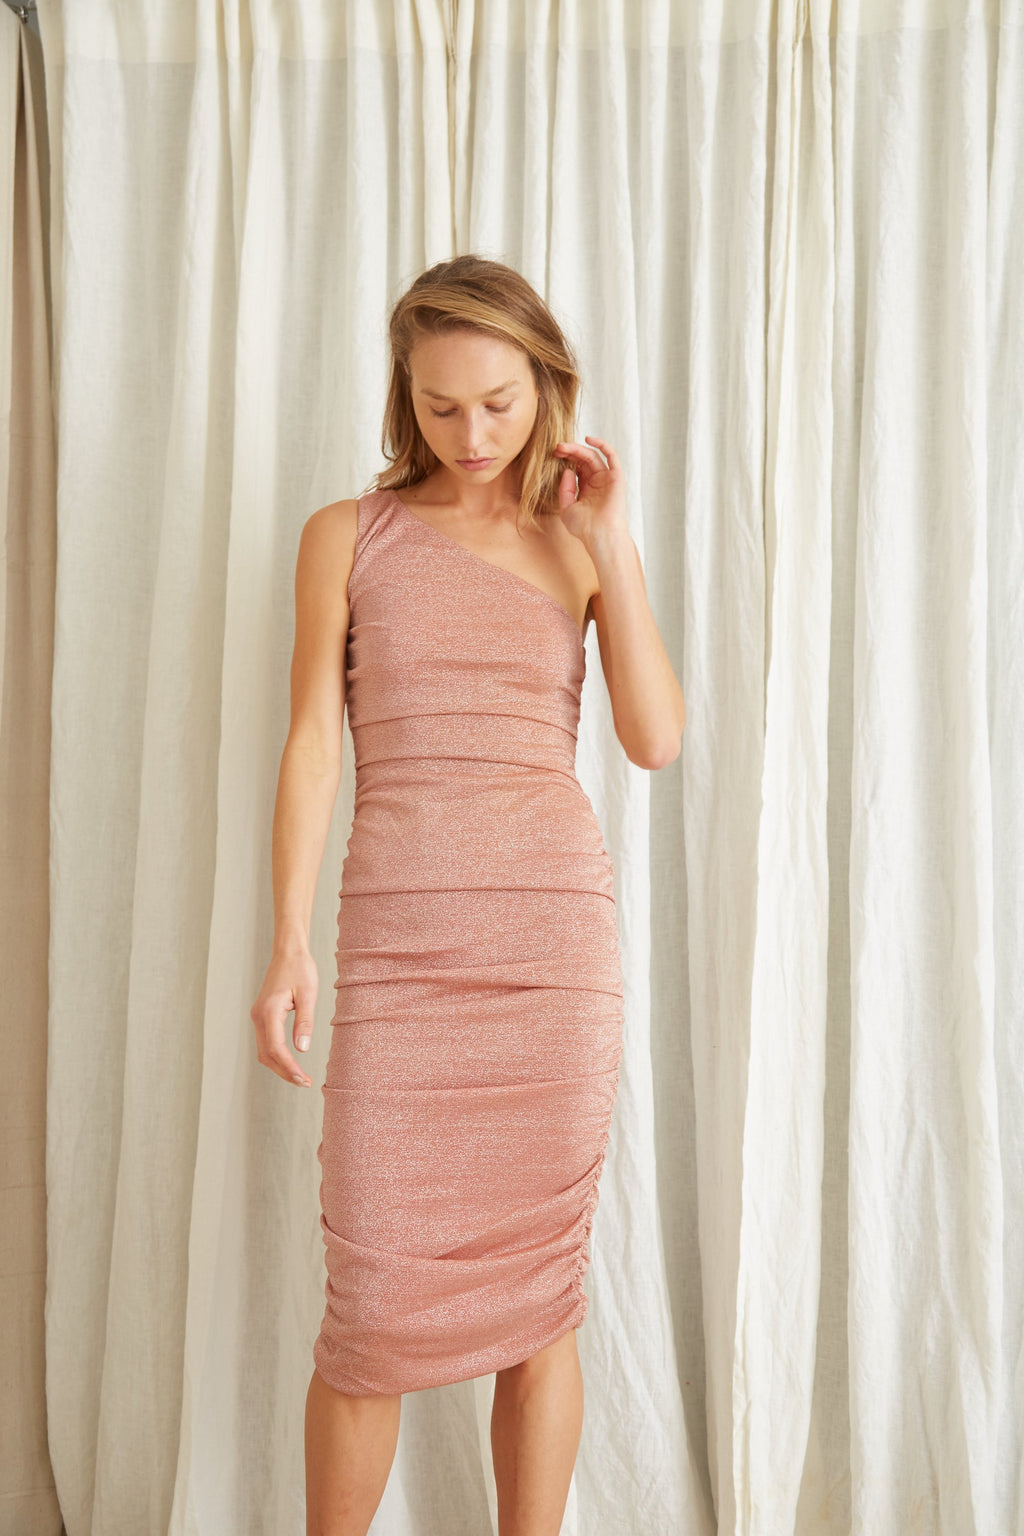 Third Form Star Dust One Shoulder Midi Dress - Blush